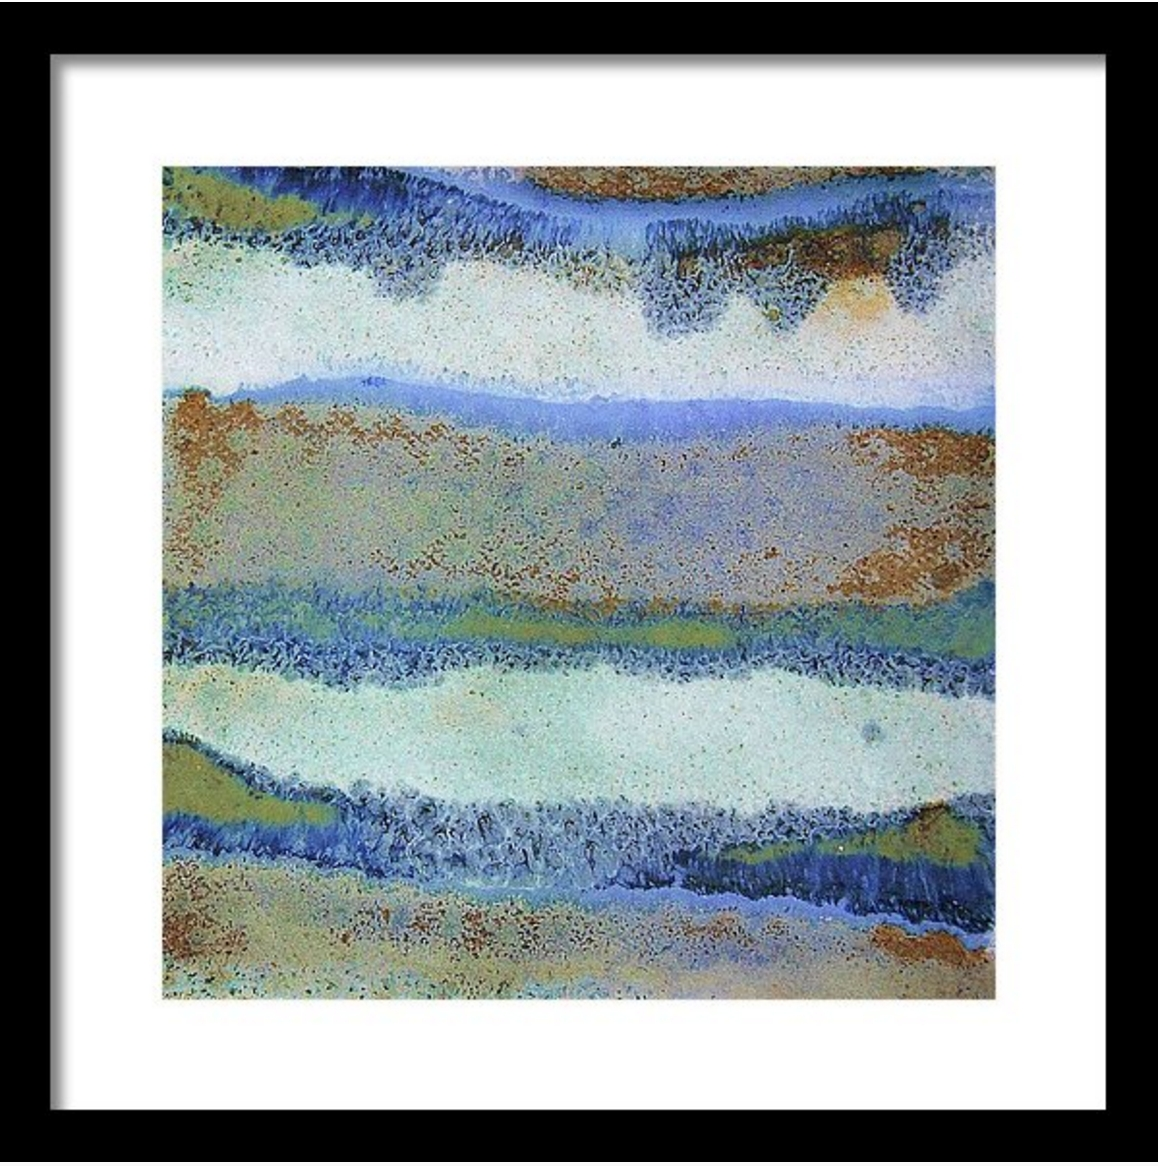 Abstract Framed Wall Art – Square #33 | Contemporary Frames Inside Most Current Abstract Framed Art Prints (View 1 of 15)